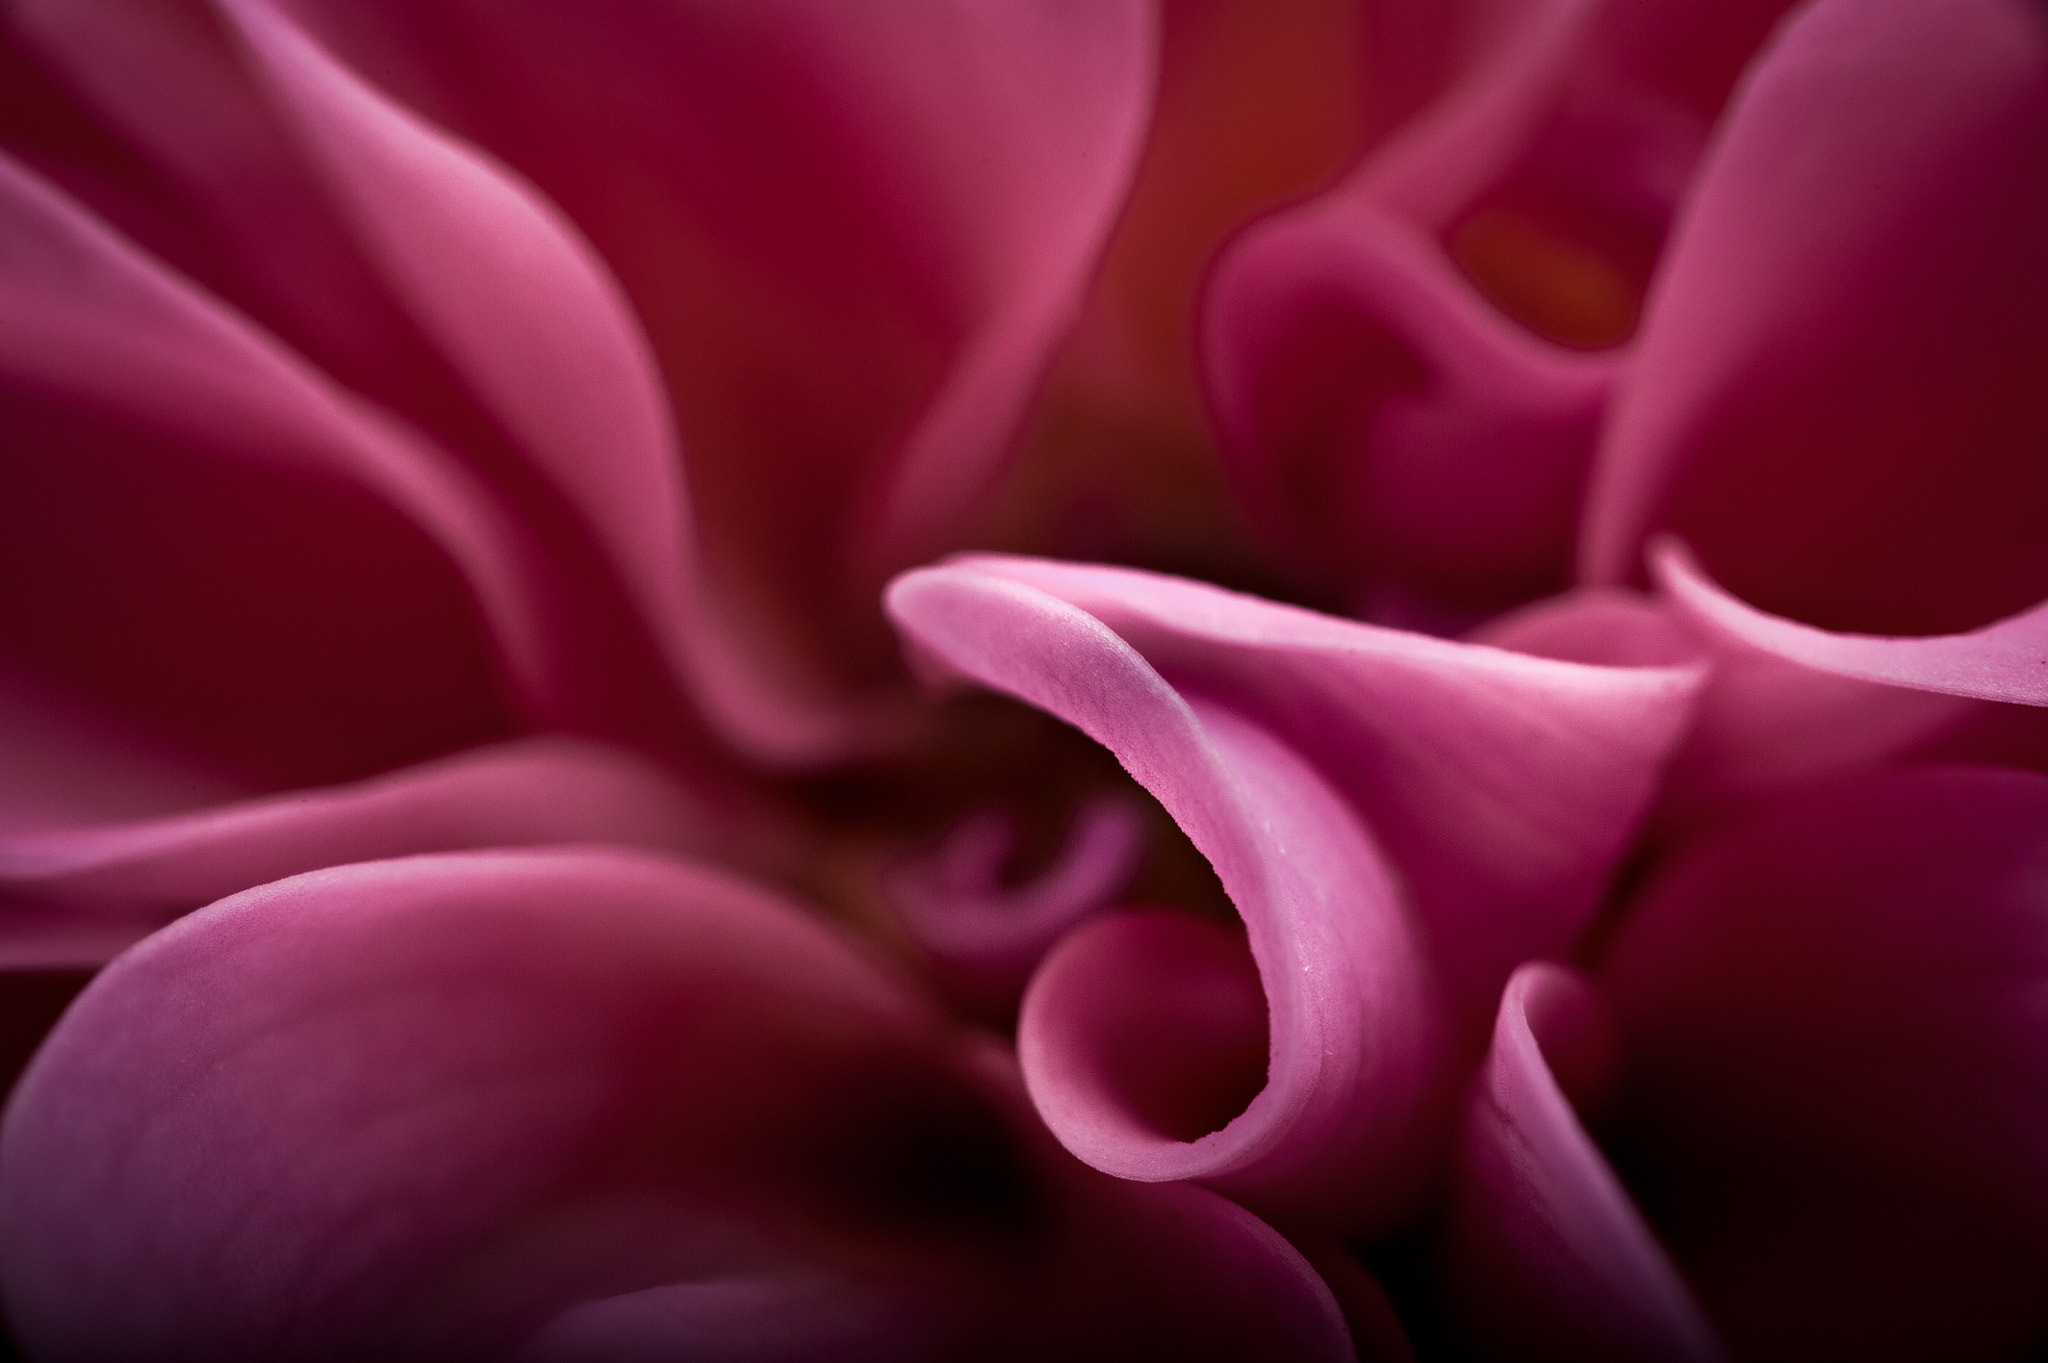 Photograph Tenderness in Pink by Artur Borzęcki on 500px